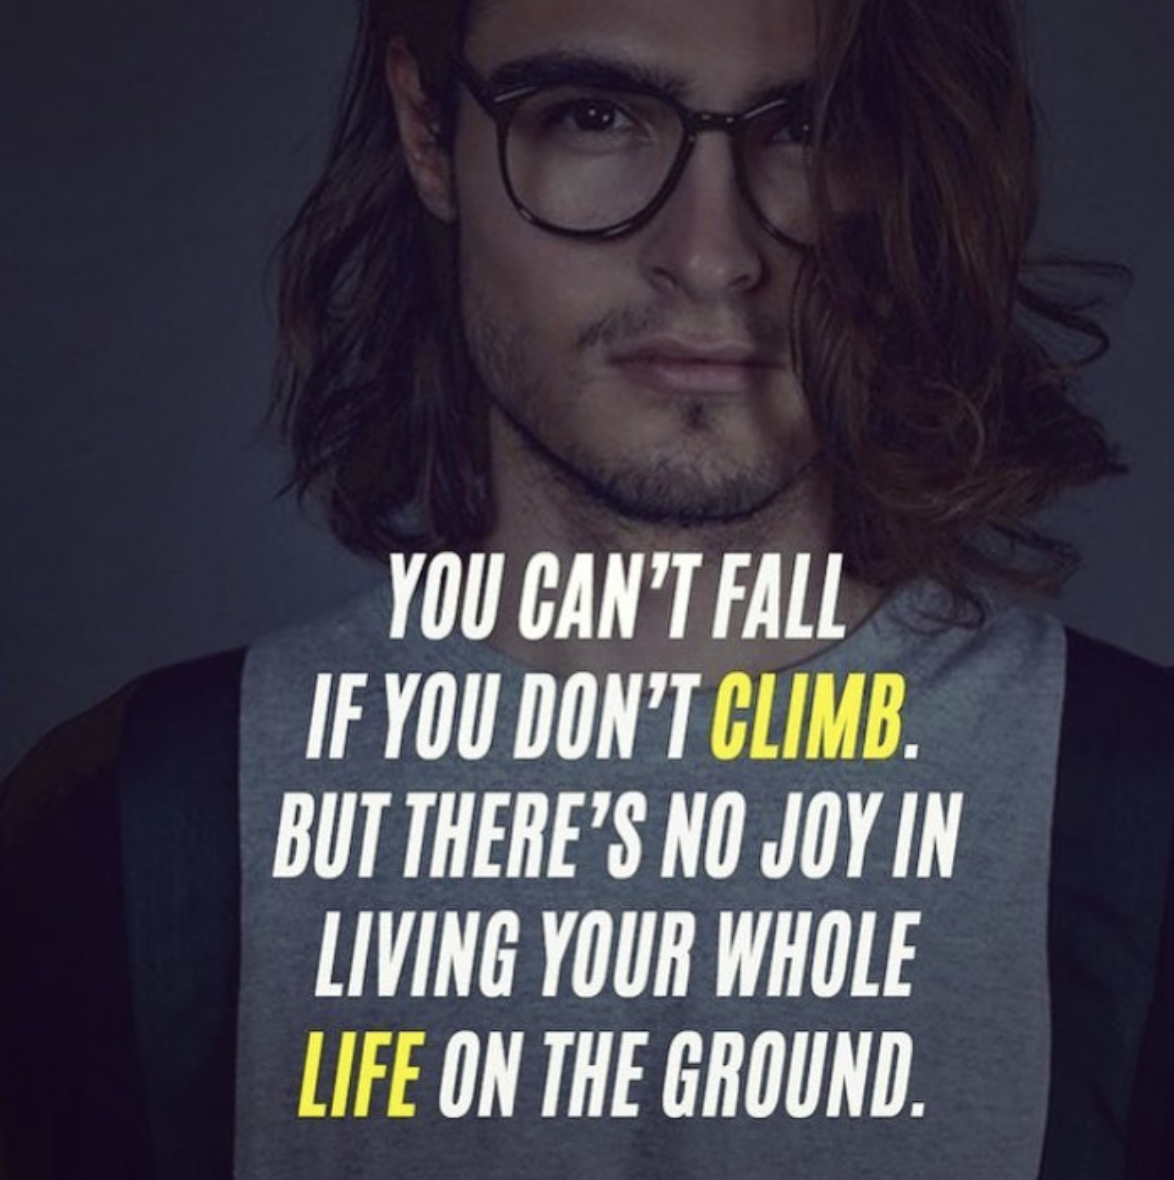 [Image] You can't fall if you don't climb. But there's no joy in living your whole life on the ground.